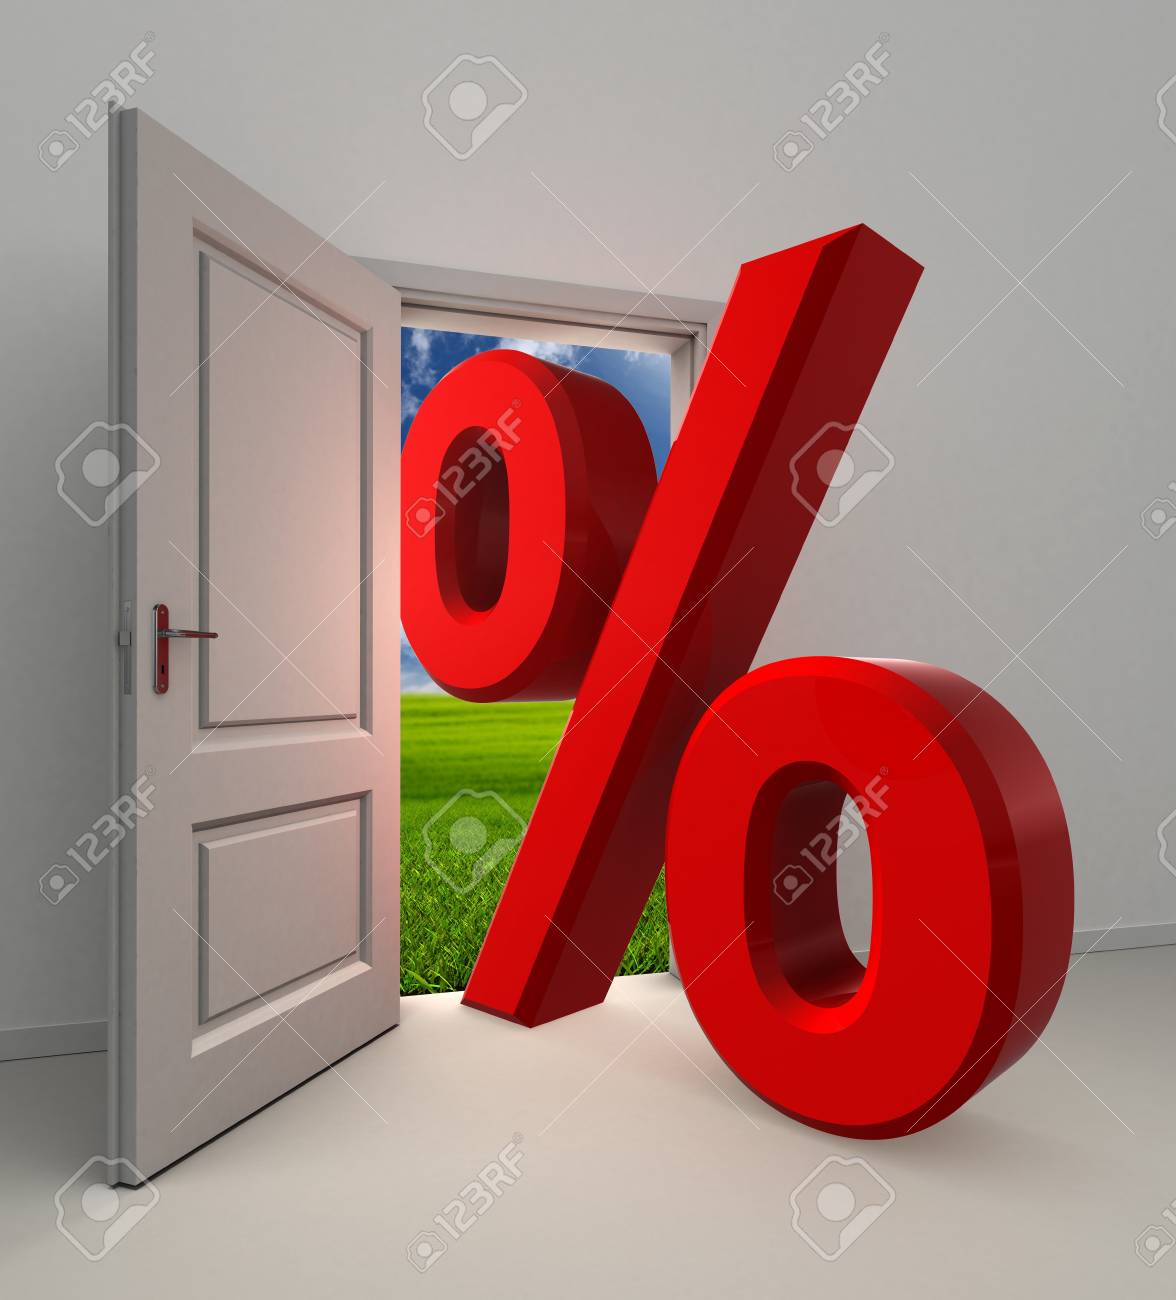 percentage  symbol and white open door with field and sky background Stock Photo - 16217558